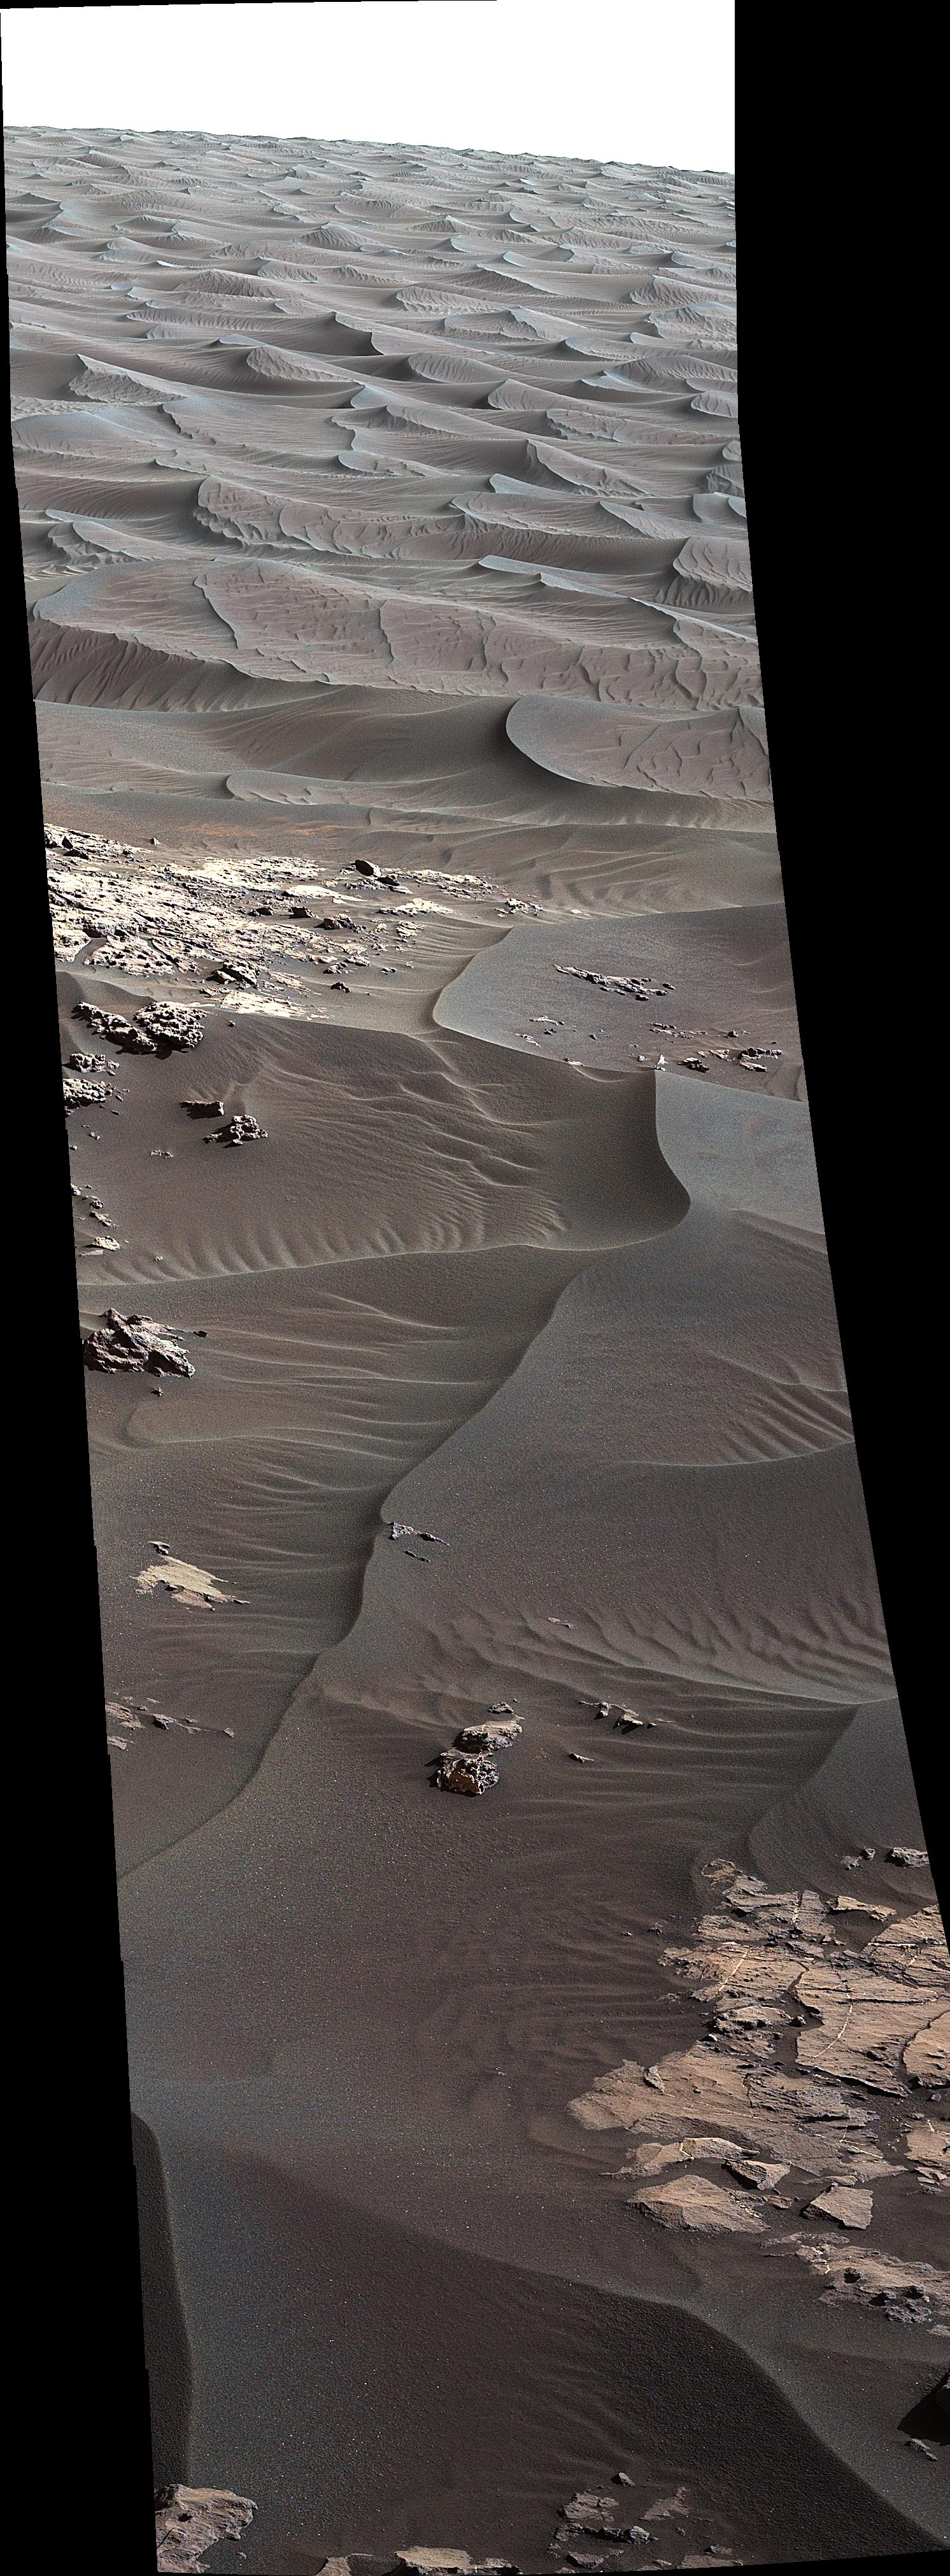 mars rover draws in sand - photo #14